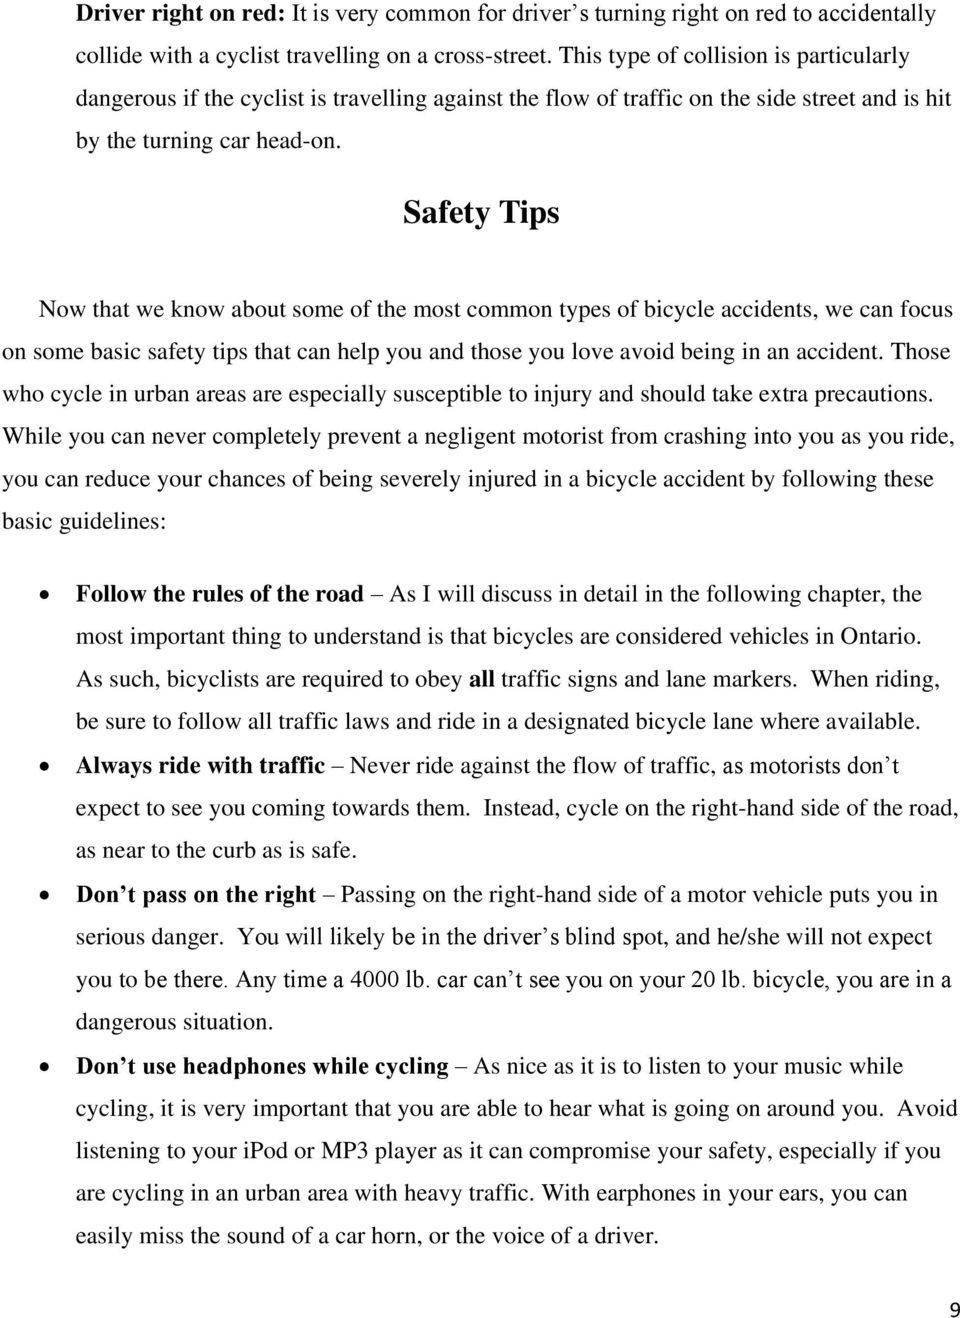 Safety Tips Now that we know about some of the most common types of bicycle accidents, we can focus on some basic safety tips that can help you and those you love avoid being in an accident.